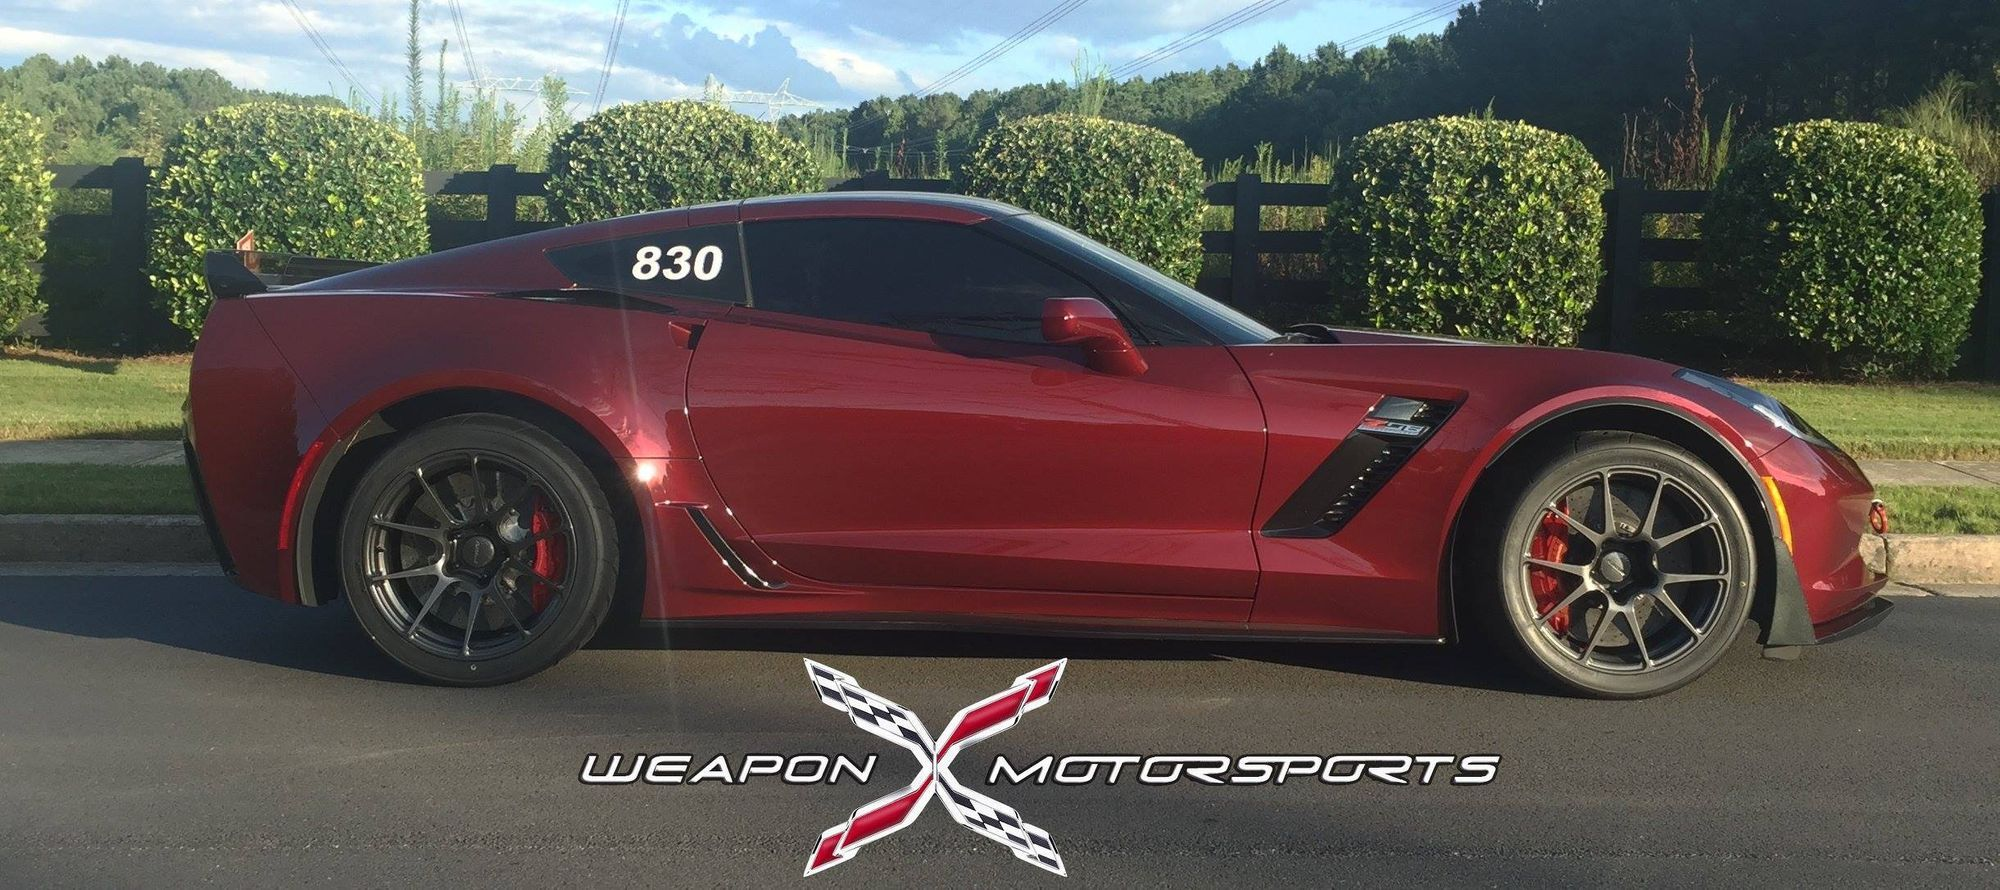 2016 Chevrolet Corvette Z06 | Eric Fleming's C7 Corvette Z06 on Forgeline One Piece Forged Monoblock GA1R Open Lug Cap Edition Wheels